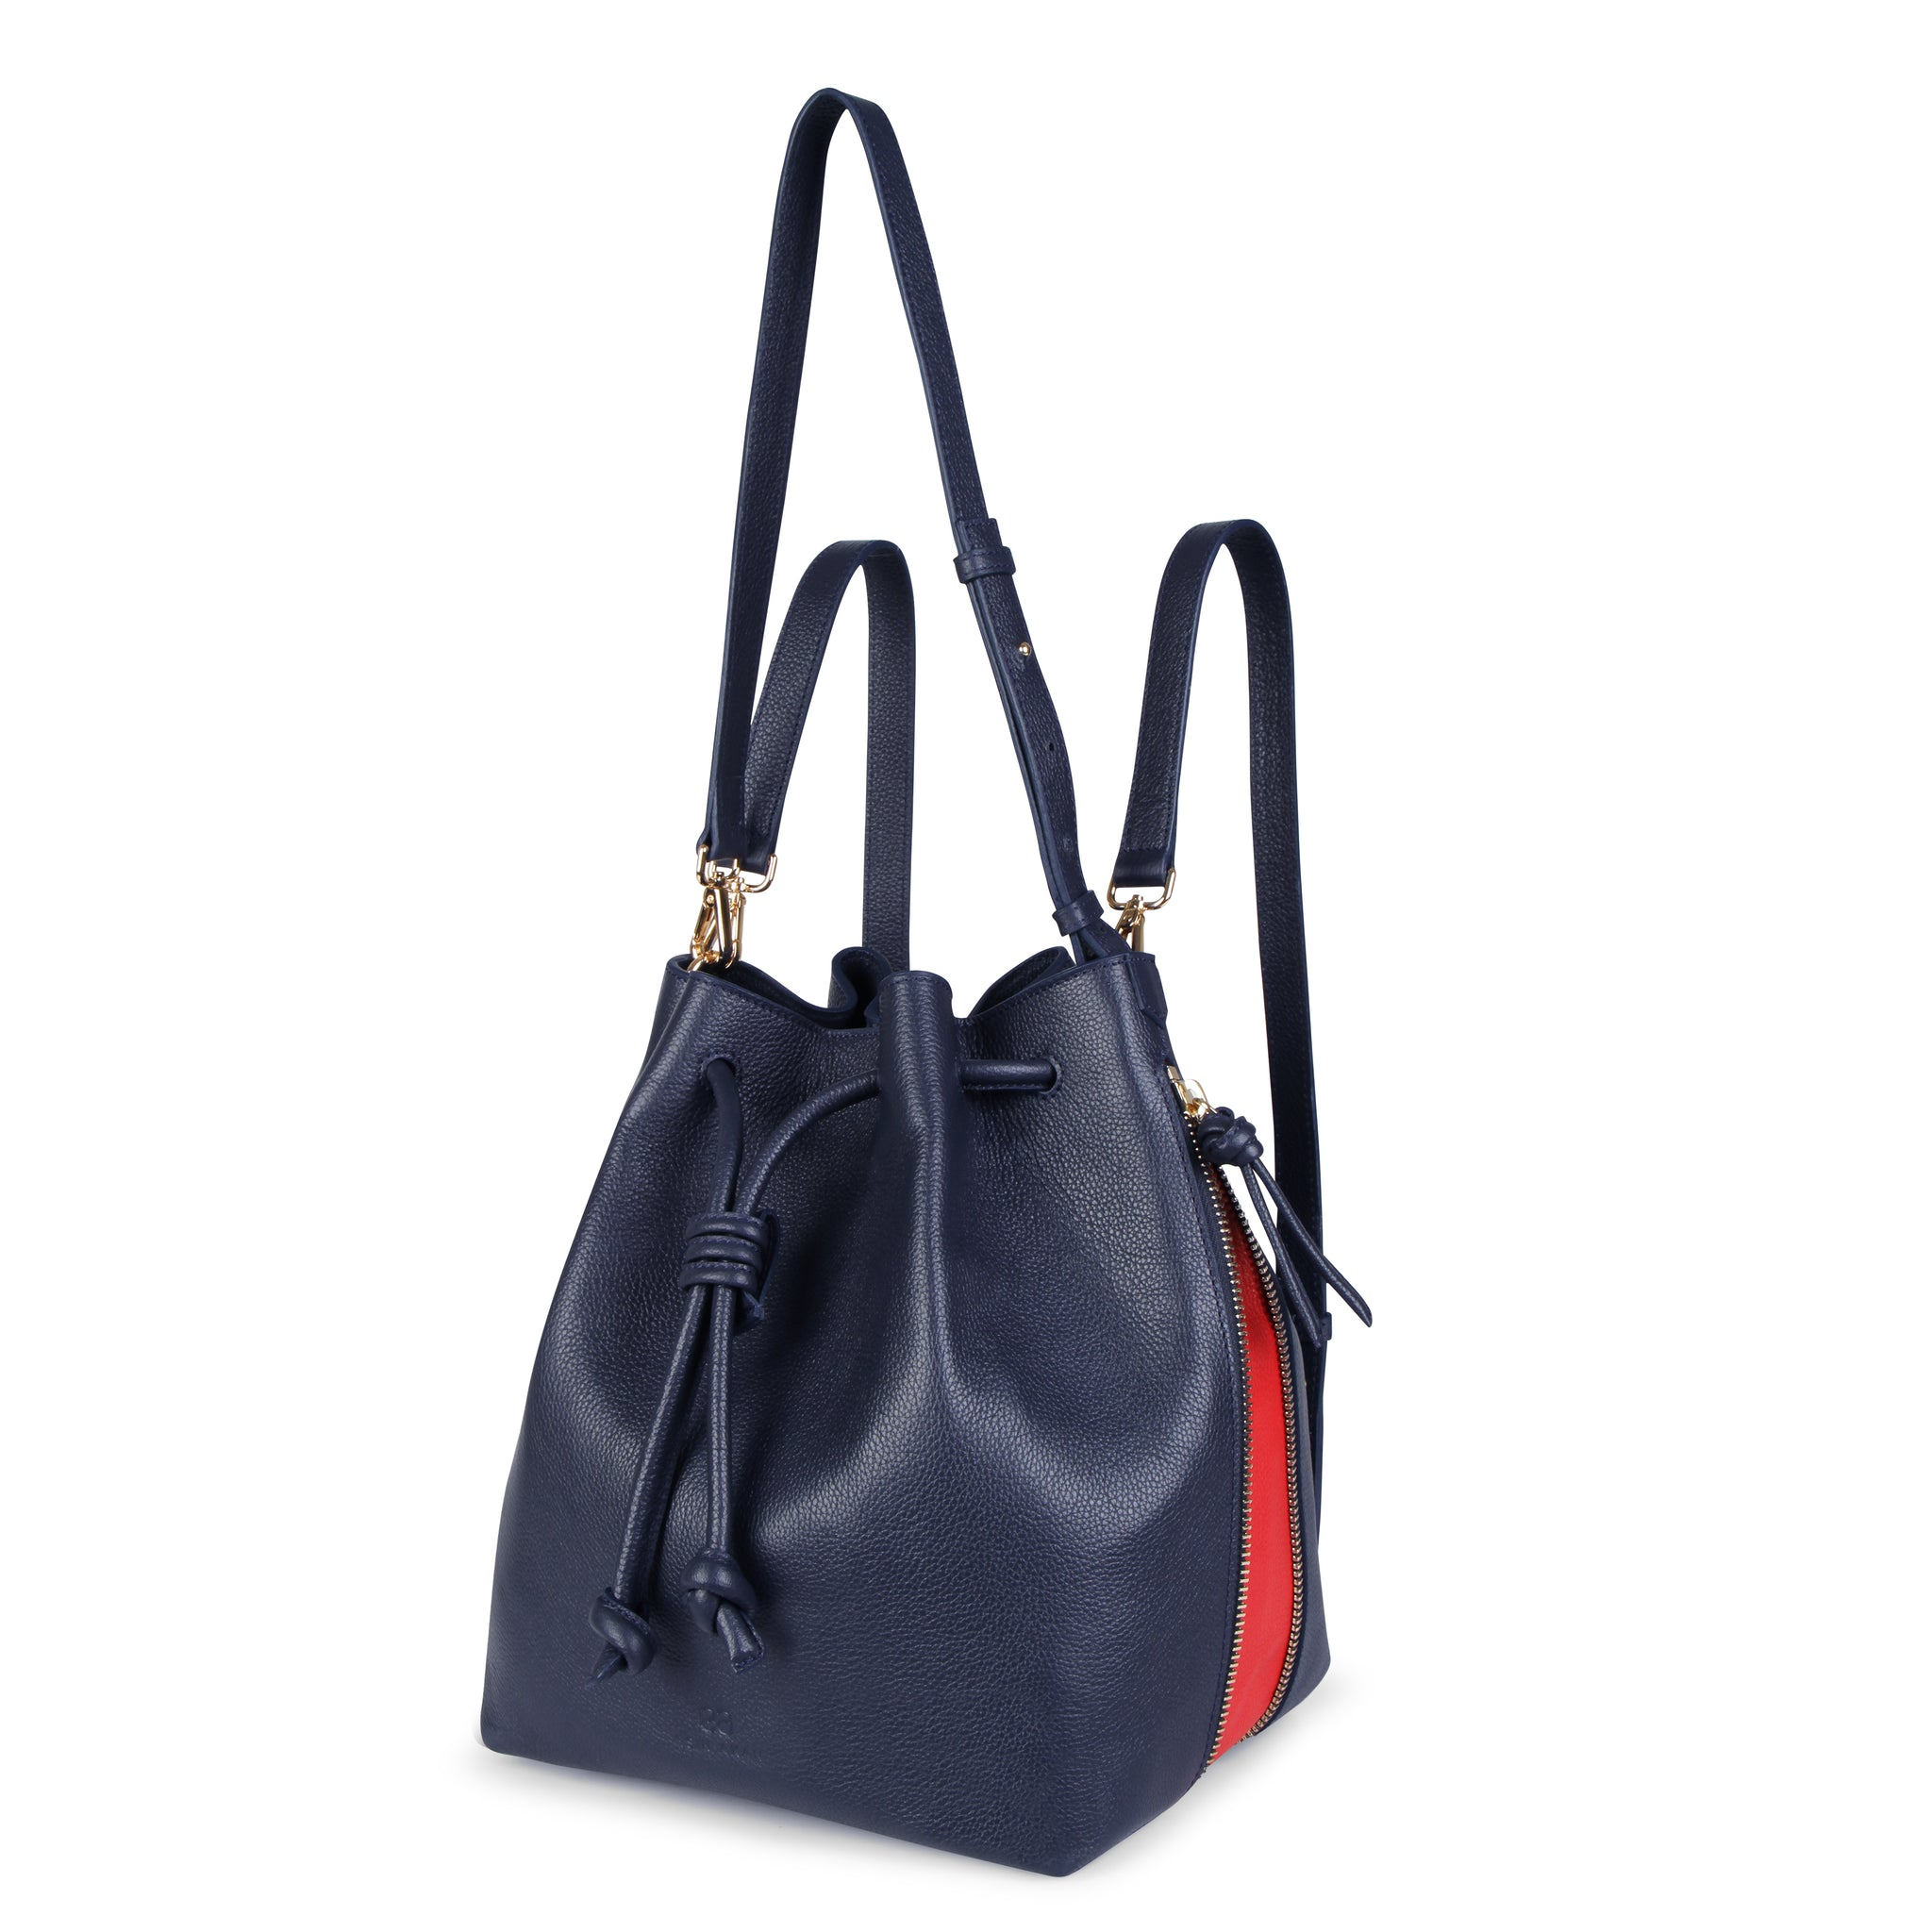 A convertible laptop size womens leather backpack in navy that could be used as a crossbody as well as a bucket bag, front image.